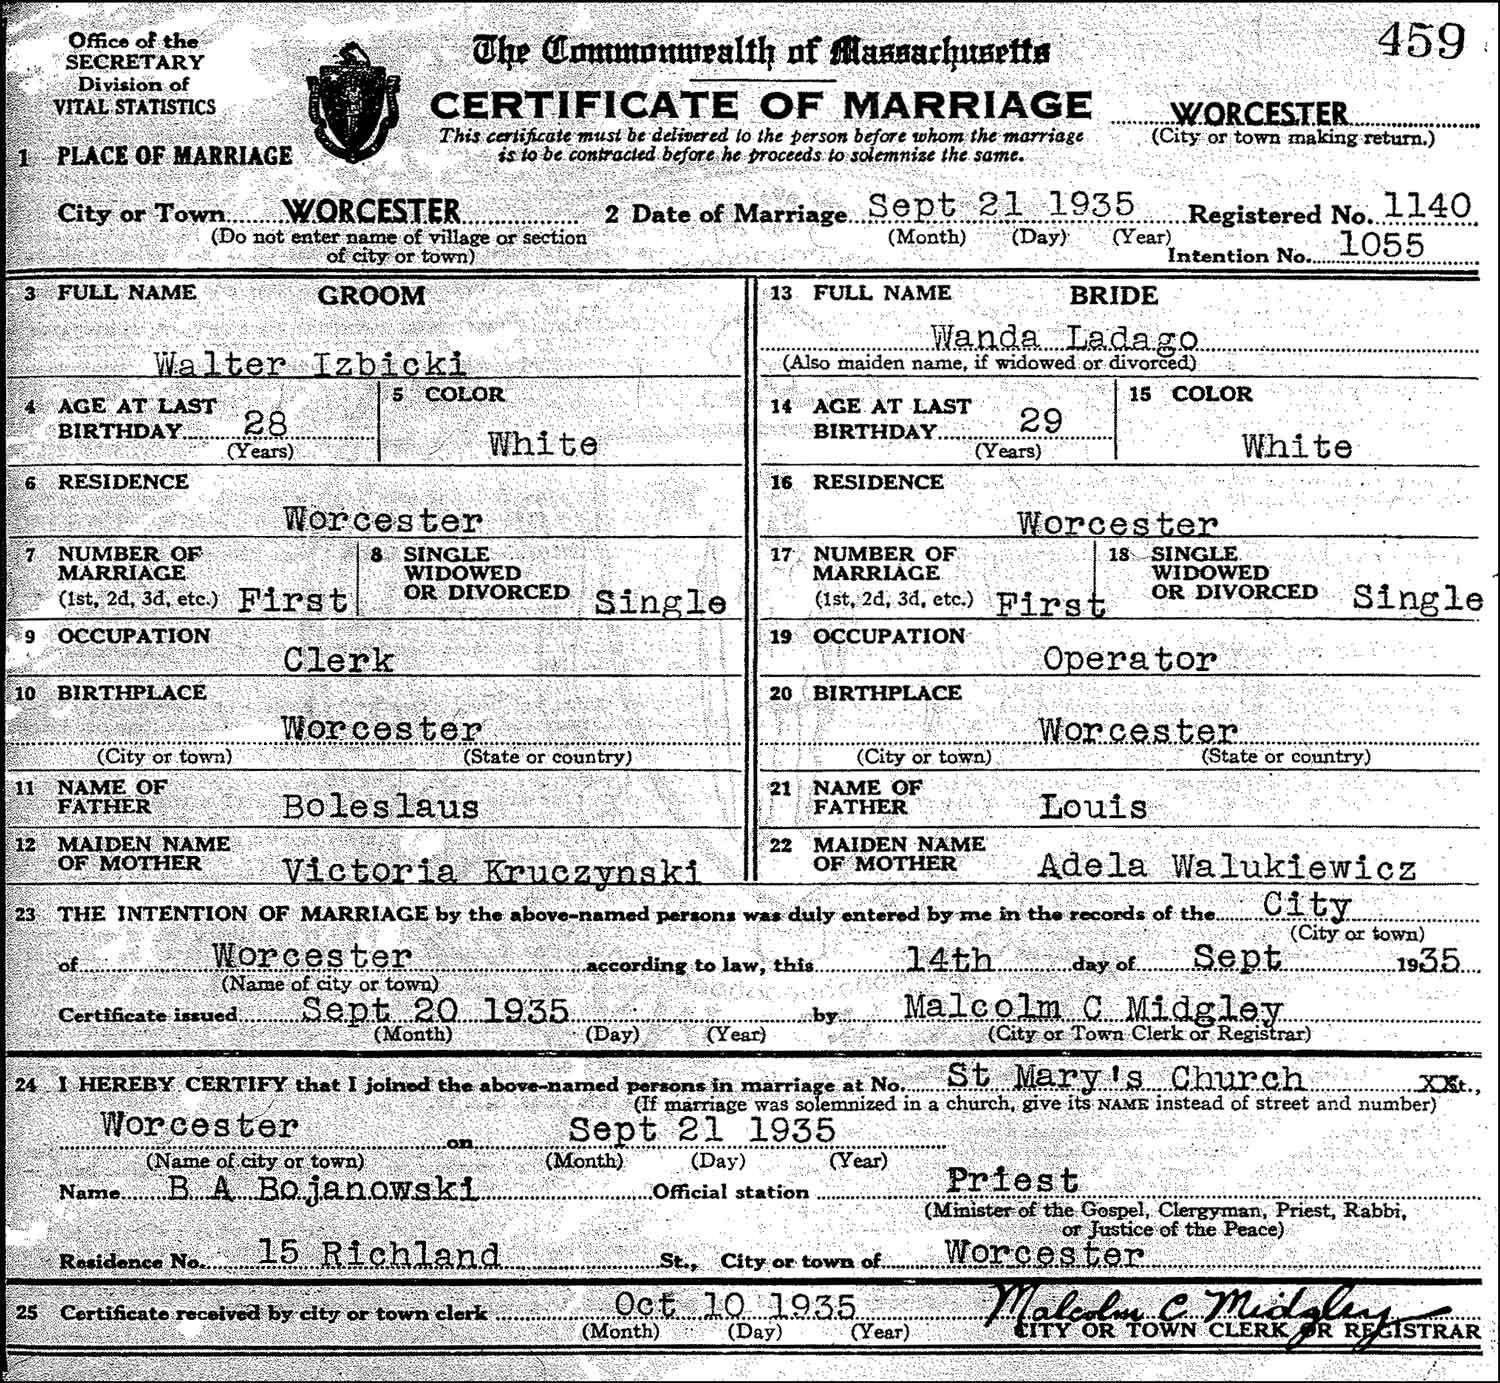 The Marriage Record of Walter C. Izbicki and Wanda B. Ladago – 1935